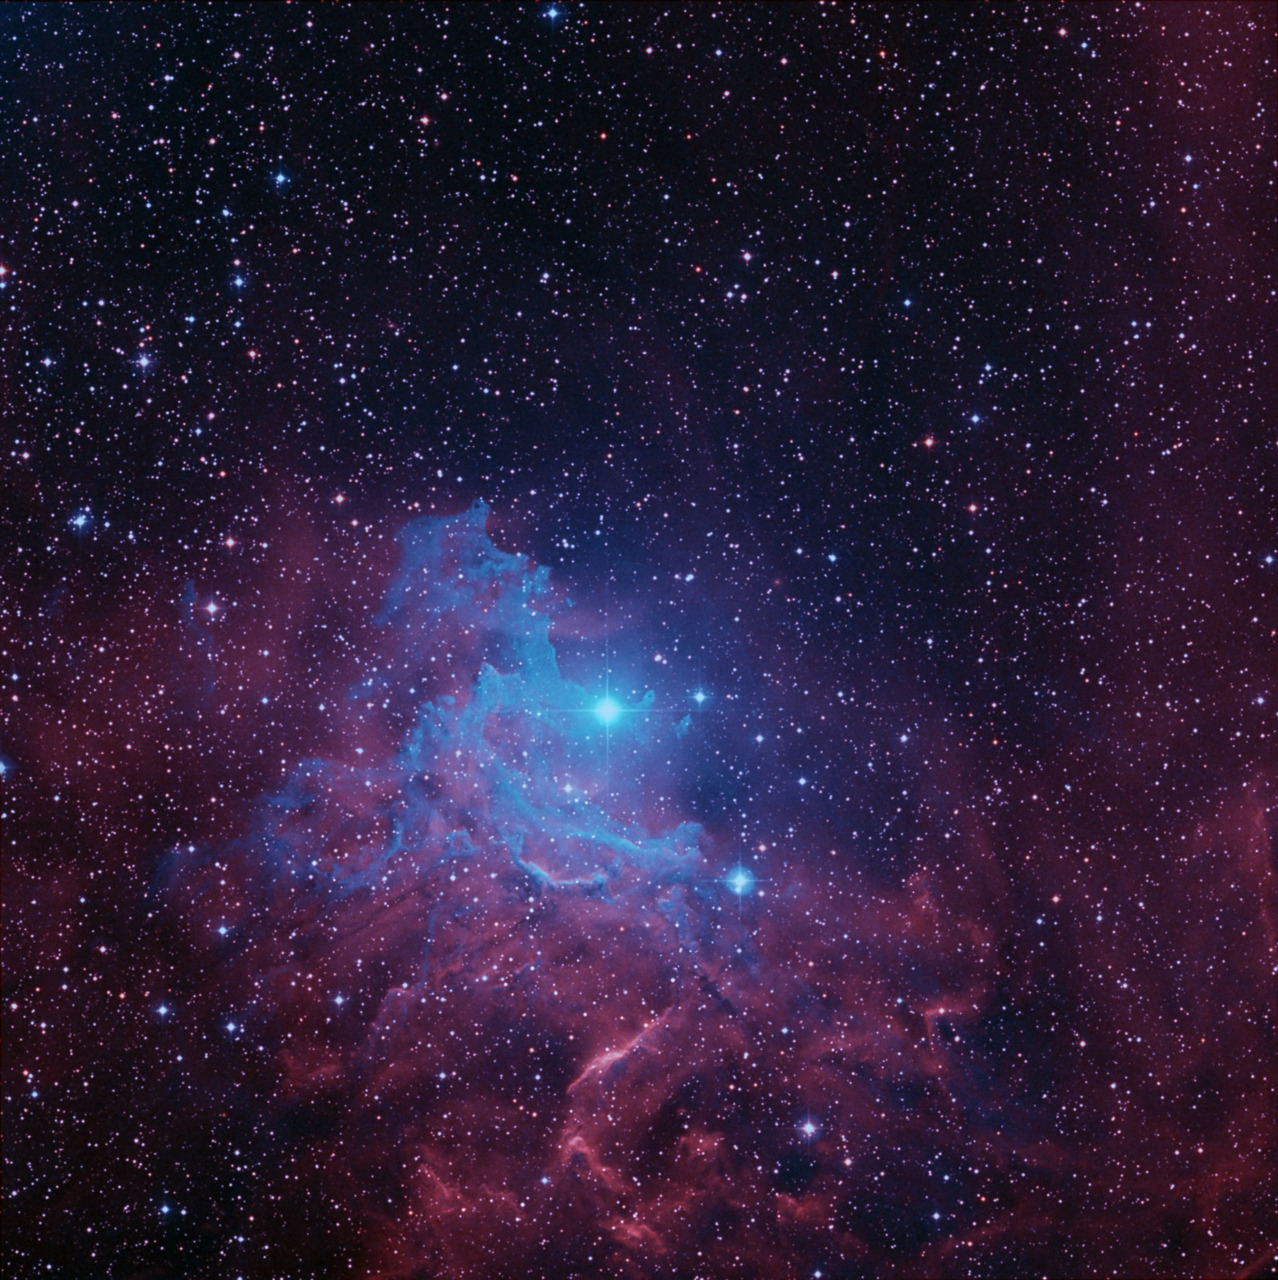 nebula tumblr background - photo #10